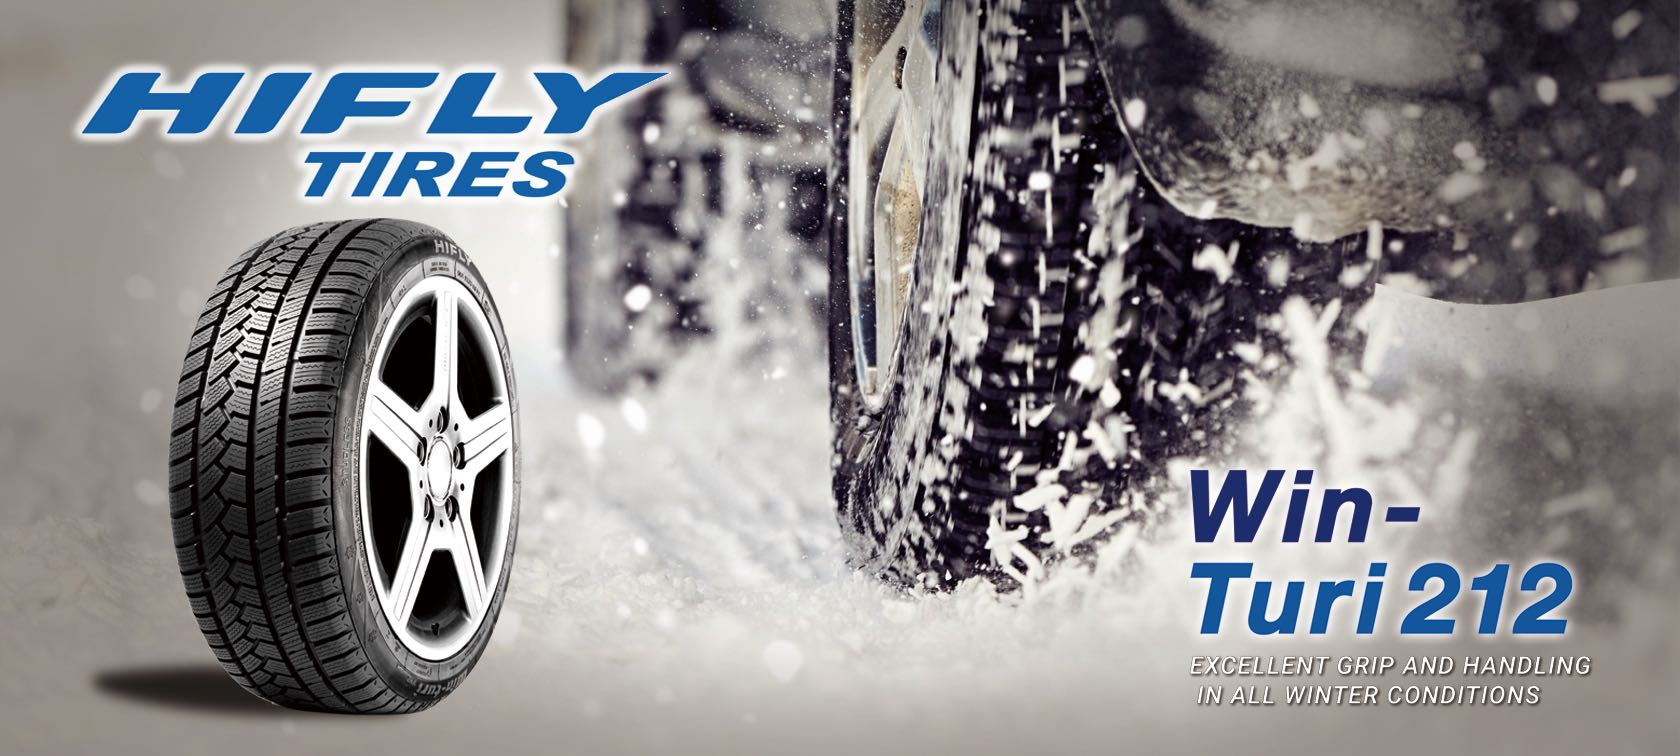 HIFLY TIRES|Official Homepage